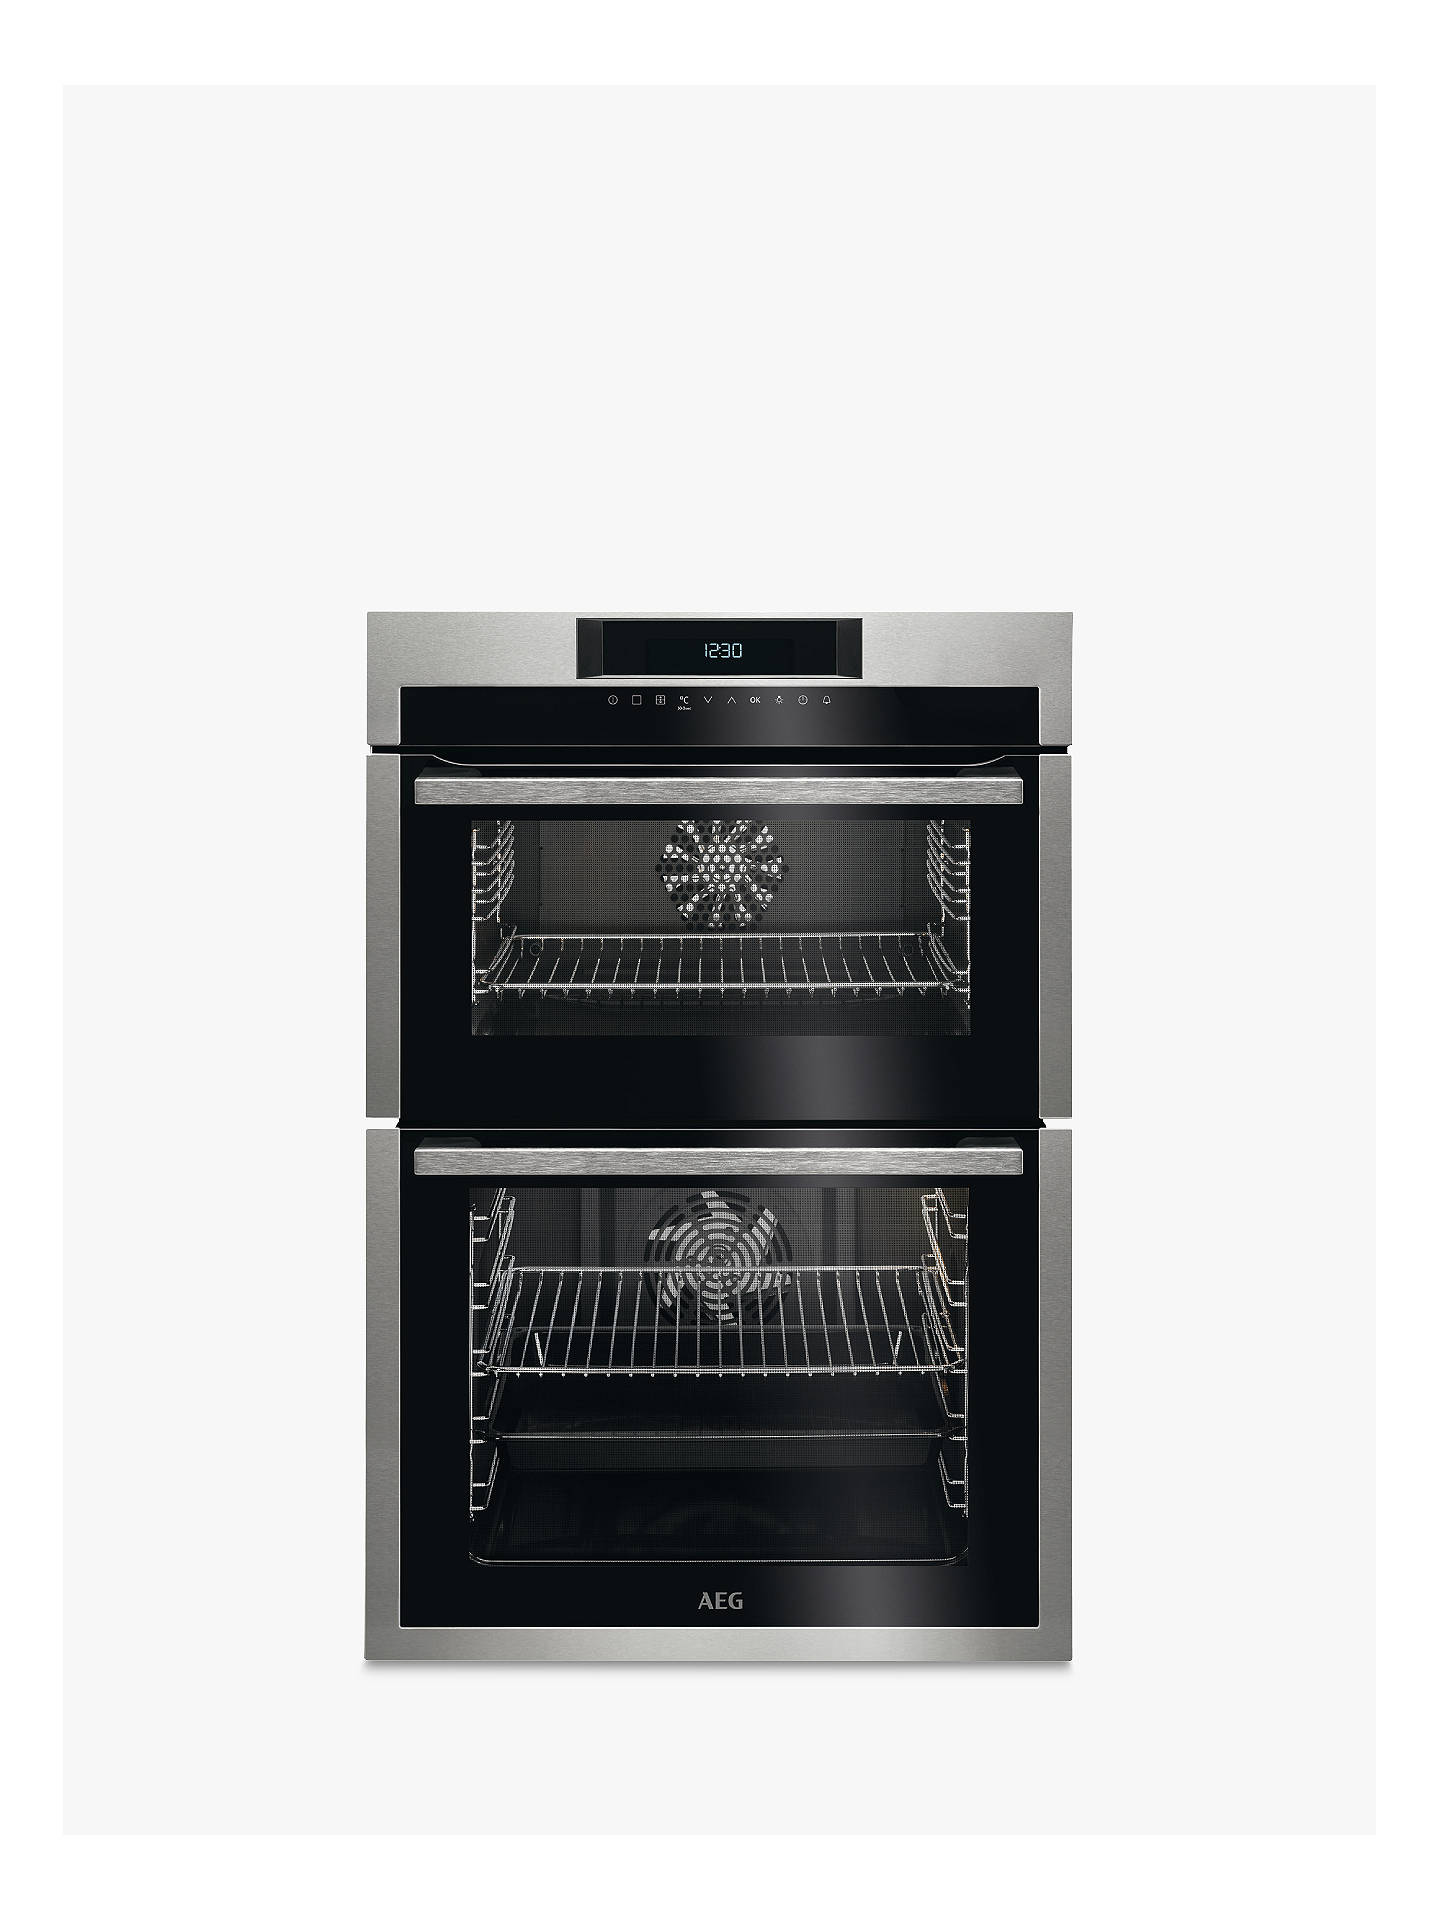 aeg dce731110m built in double oven stainless steel at. Black Bedroom Furniture Sets. Home Design Ideas